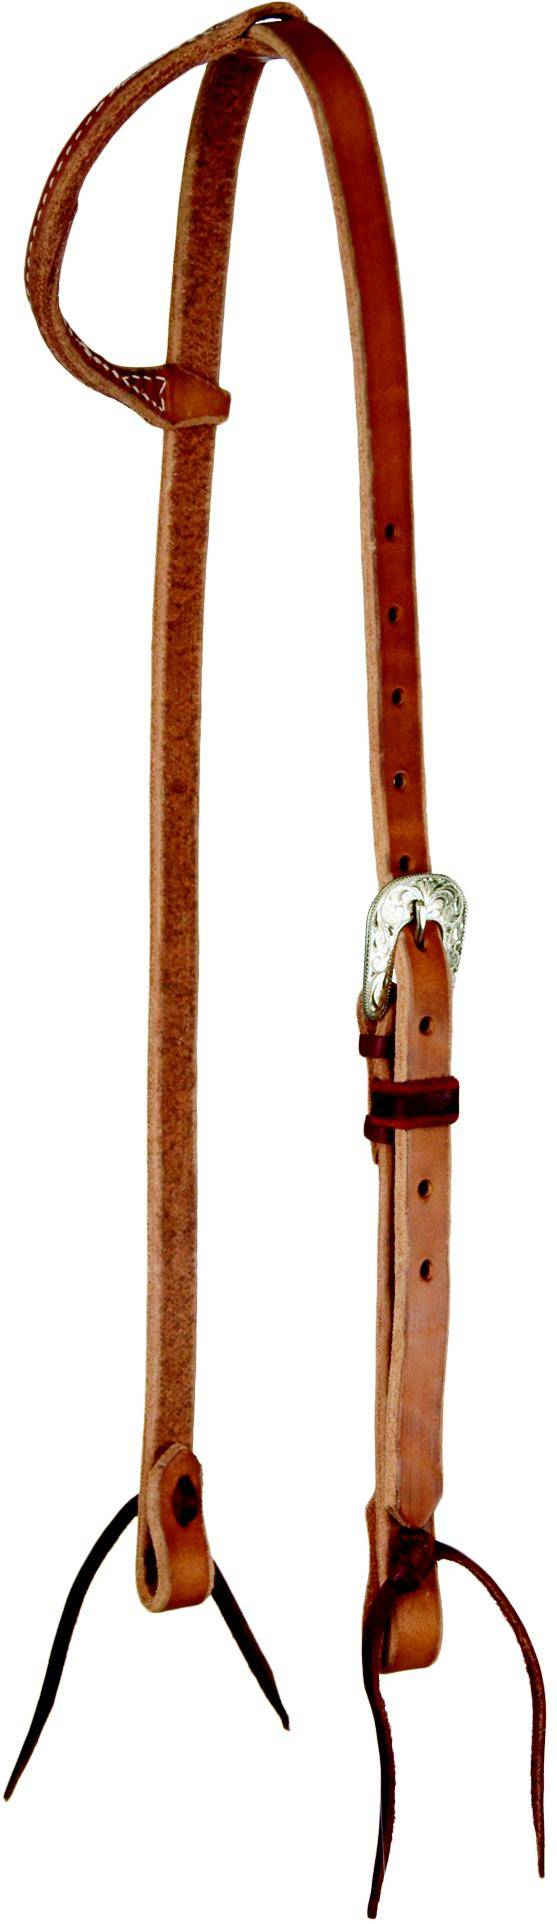 REINSMAN Cowboy Series Slide Ear Headstall